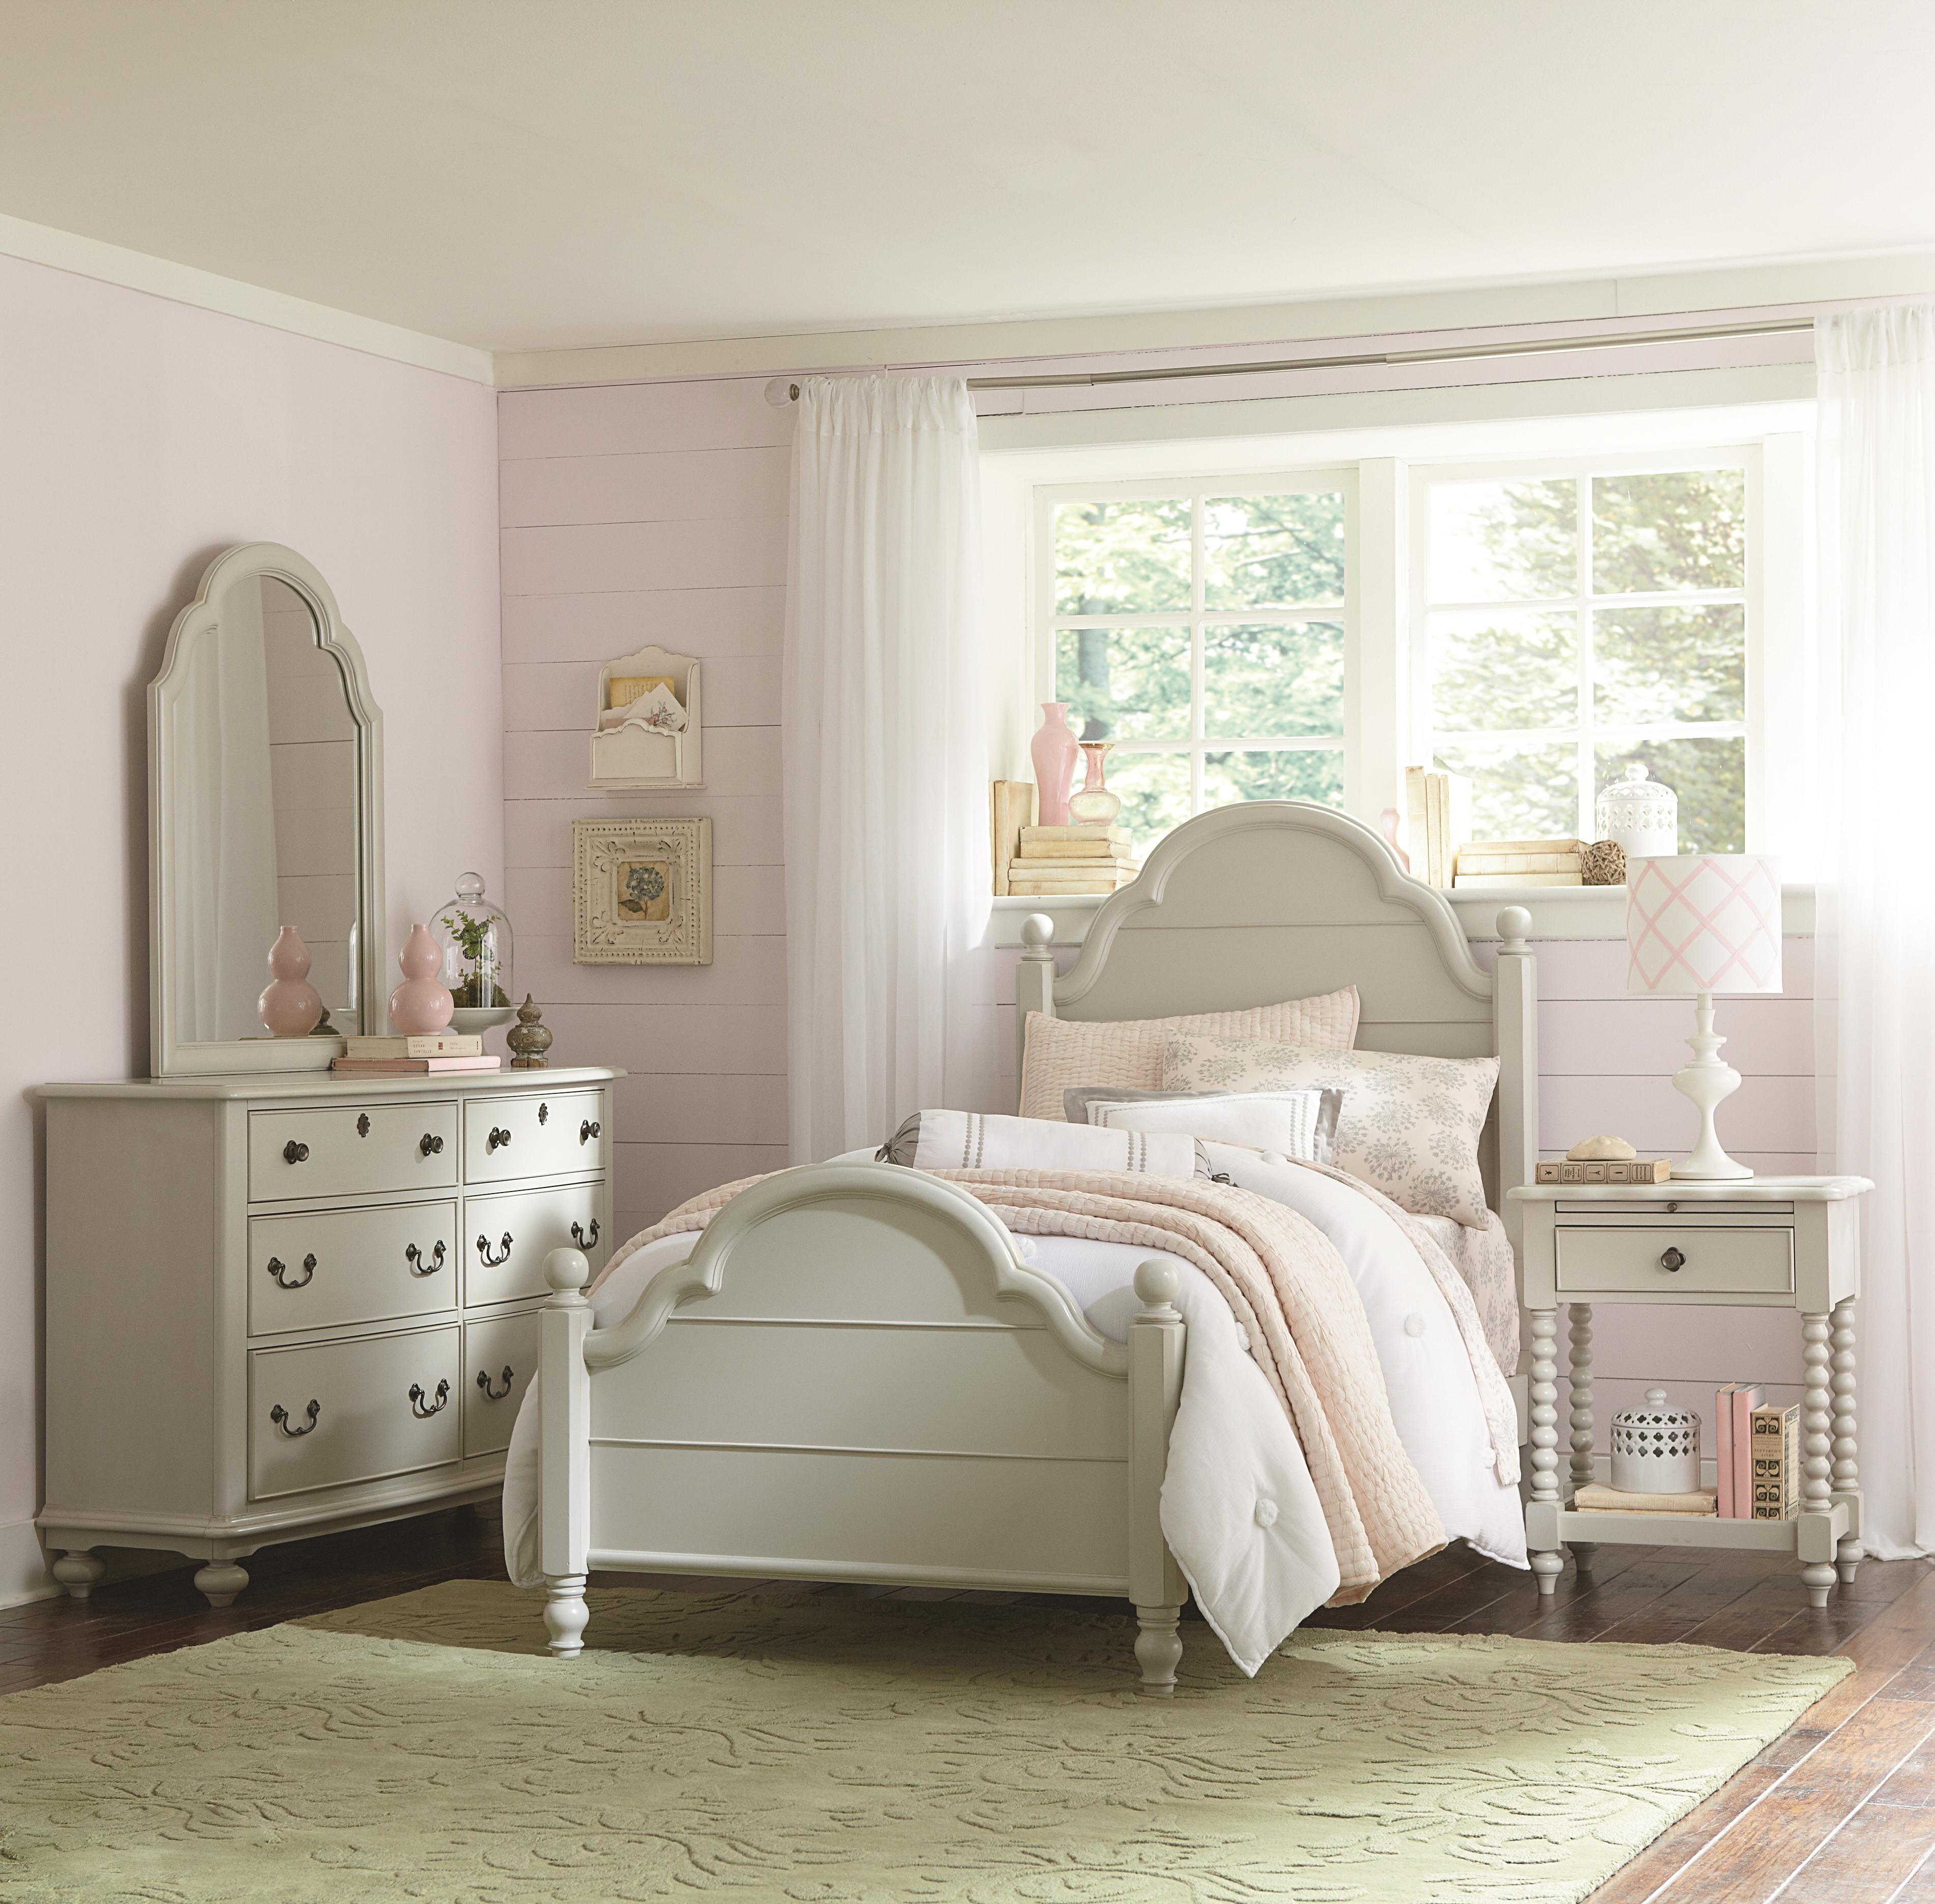 Legacy Classic Kids Inspirations by Wendy Bellissimo Twin Bedroom Group 2 - Item Number: 3830 Twin Bedroom Group 2